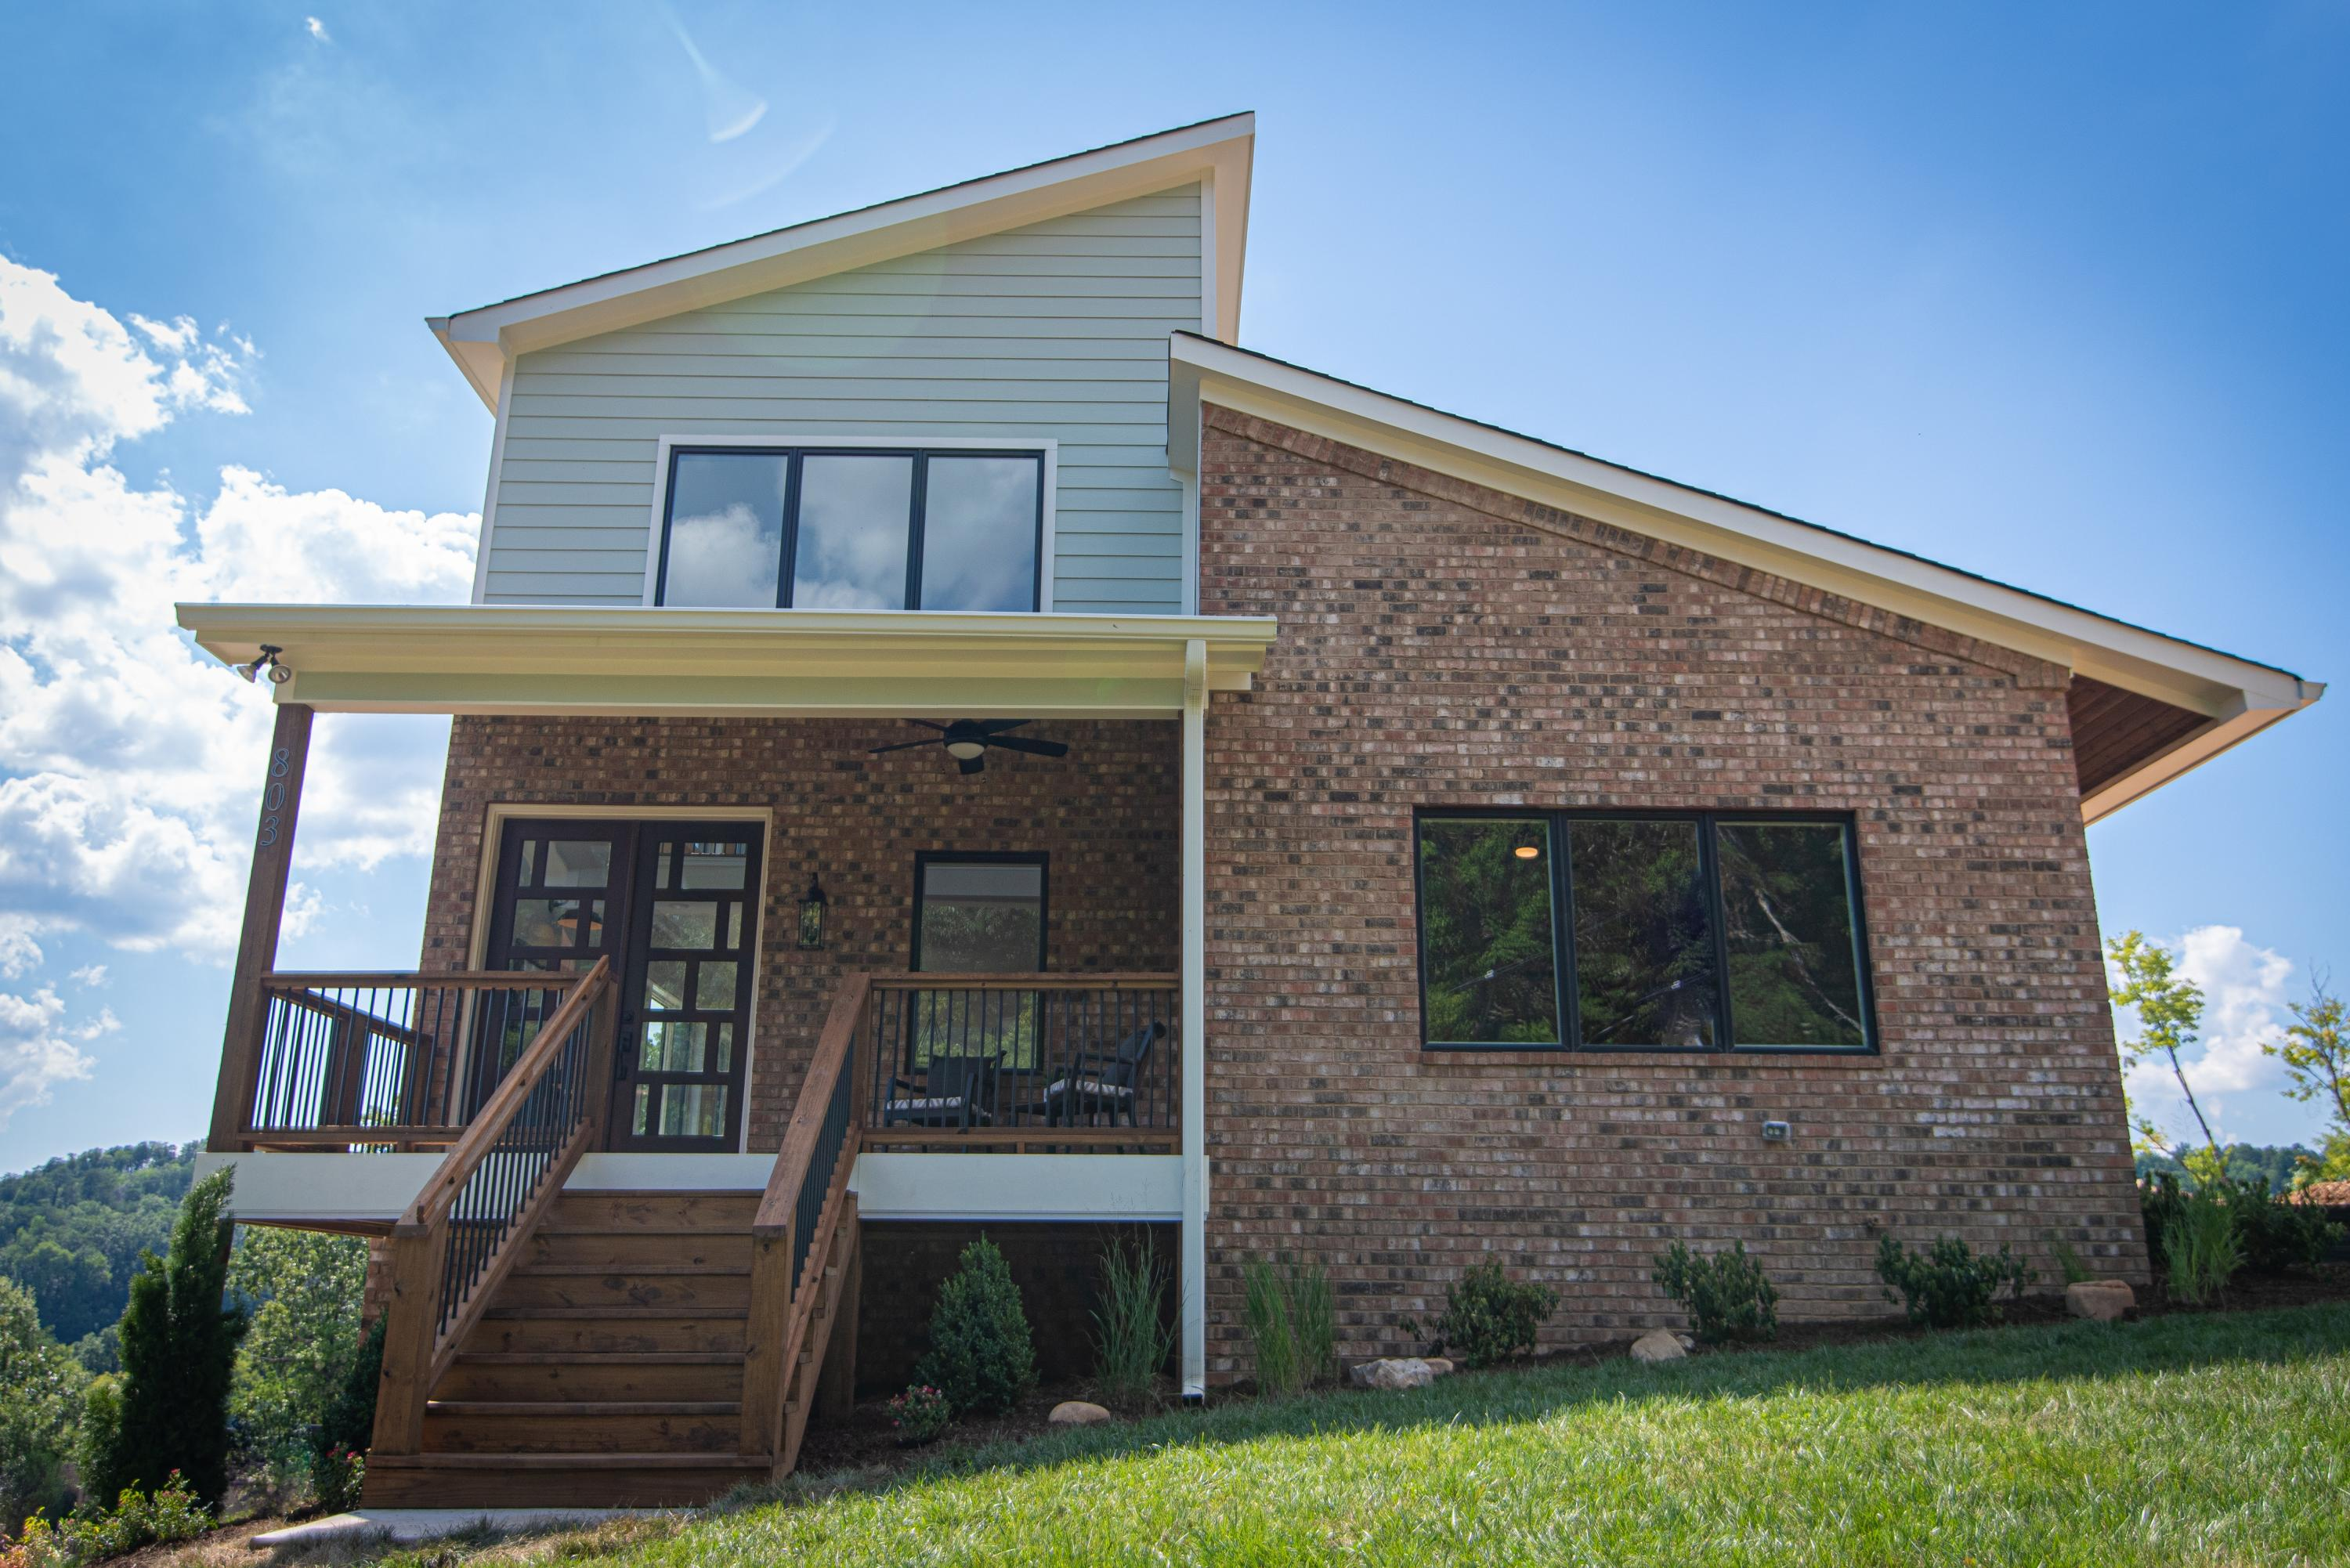 Details for 803 Franklin, Chattanooga, TN 37405